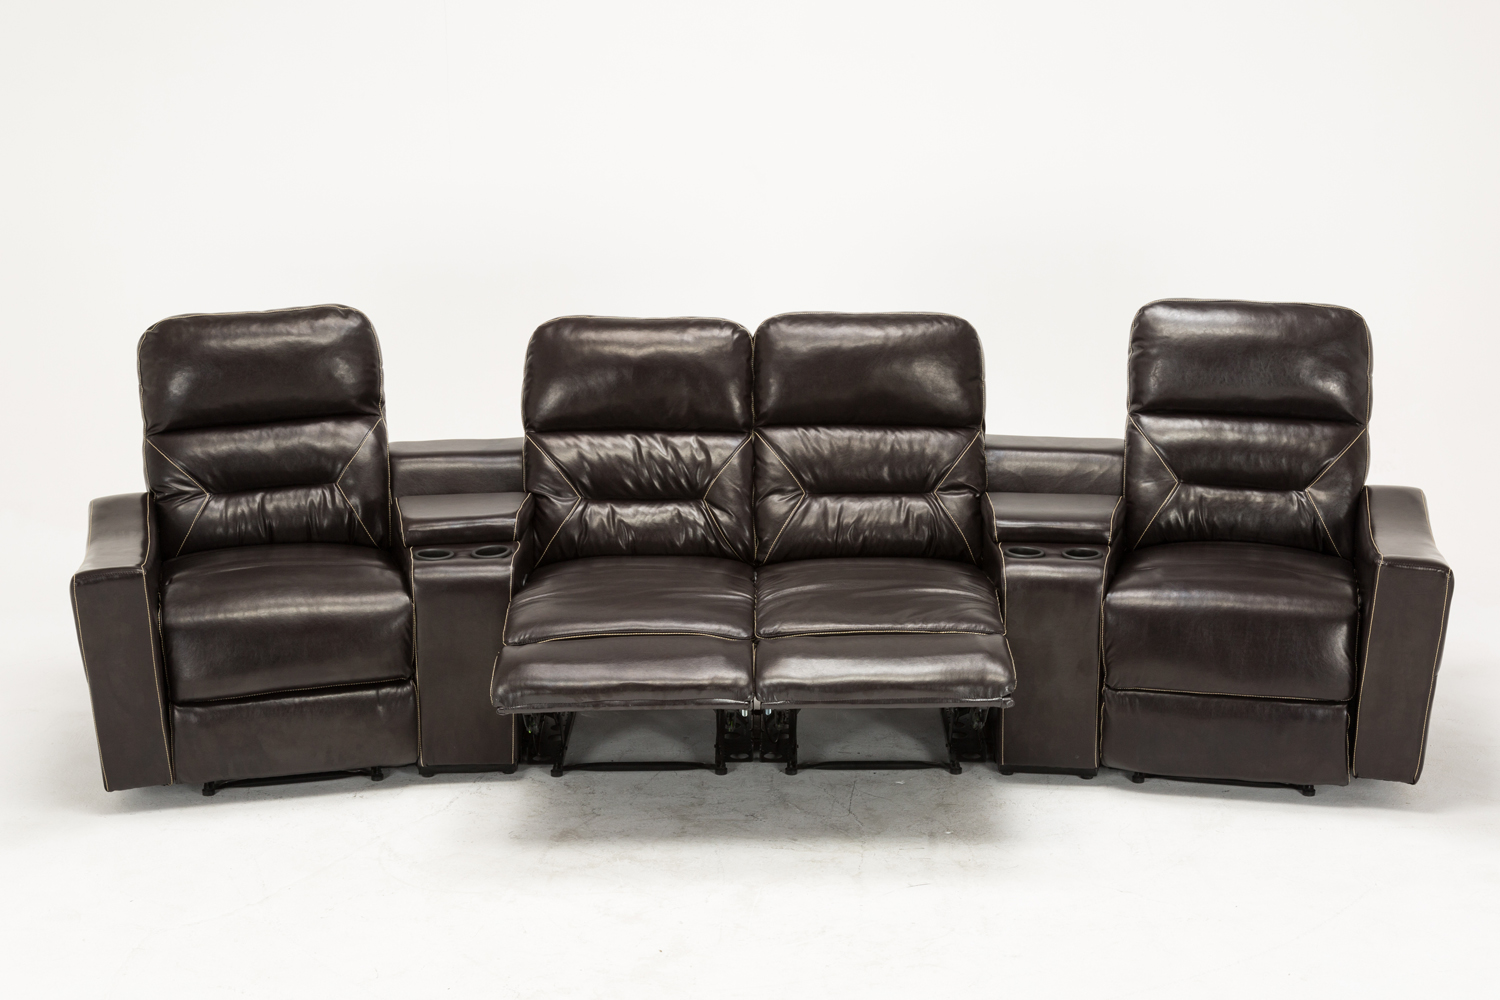 Mcombo brown vibrating 4pc home theater recliner media sofa set cup holder 7096 ebay Loveseat with cup holders